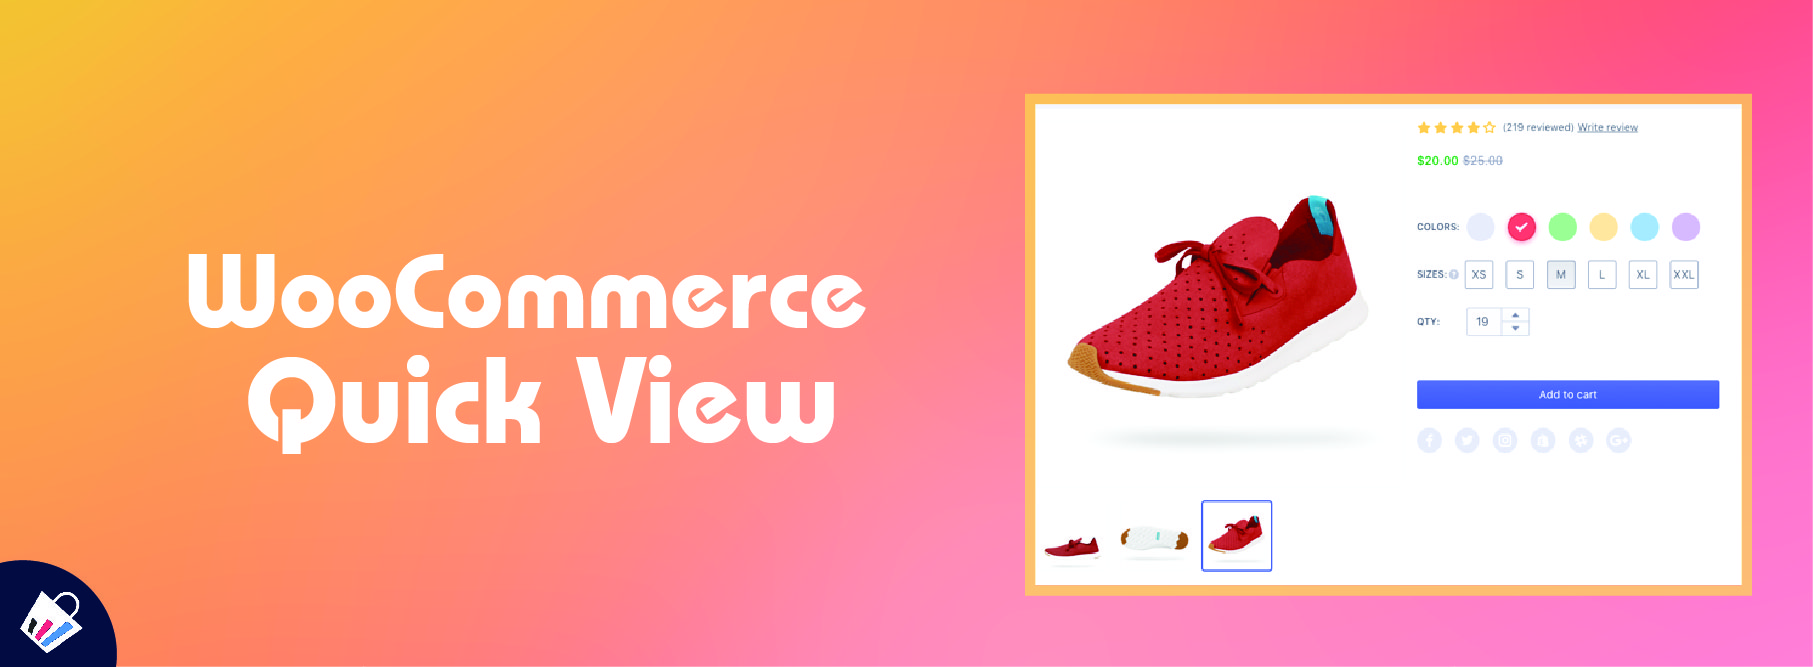 WooCommerce Quick View by Beeketing